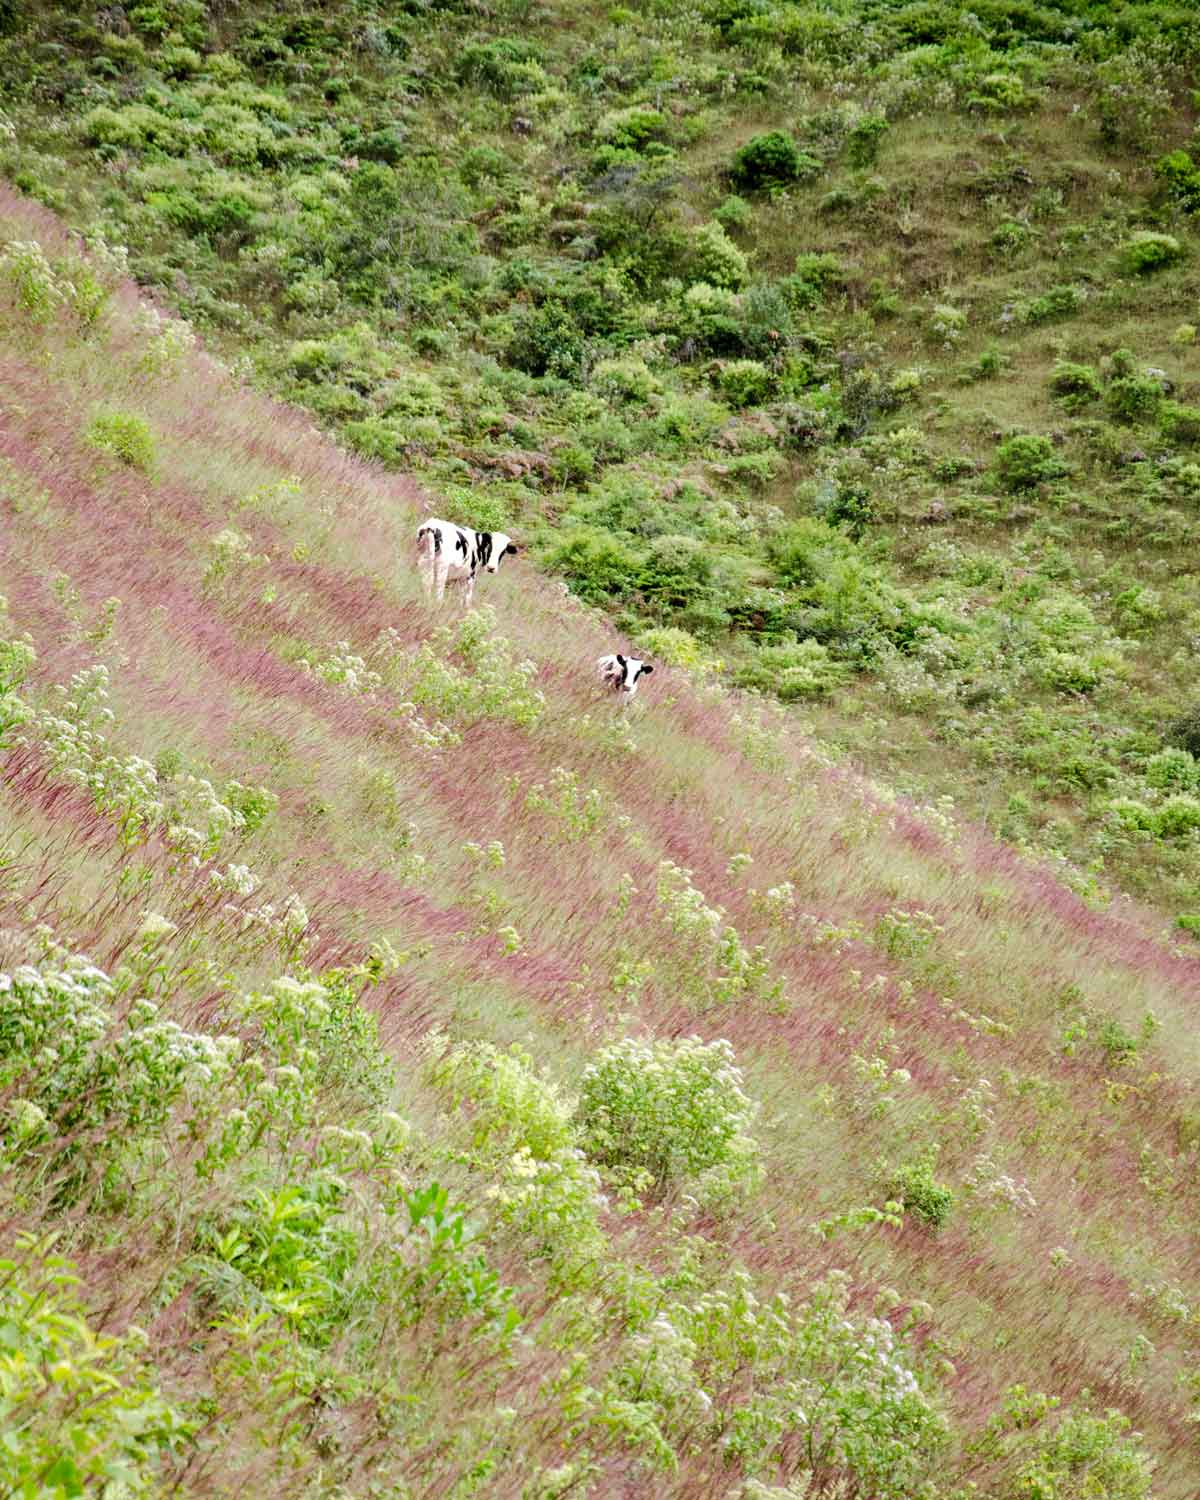 Cows grazing in a field tinted purple by yaragua, Vilcambamba, Ecuador | ©Angela Drake